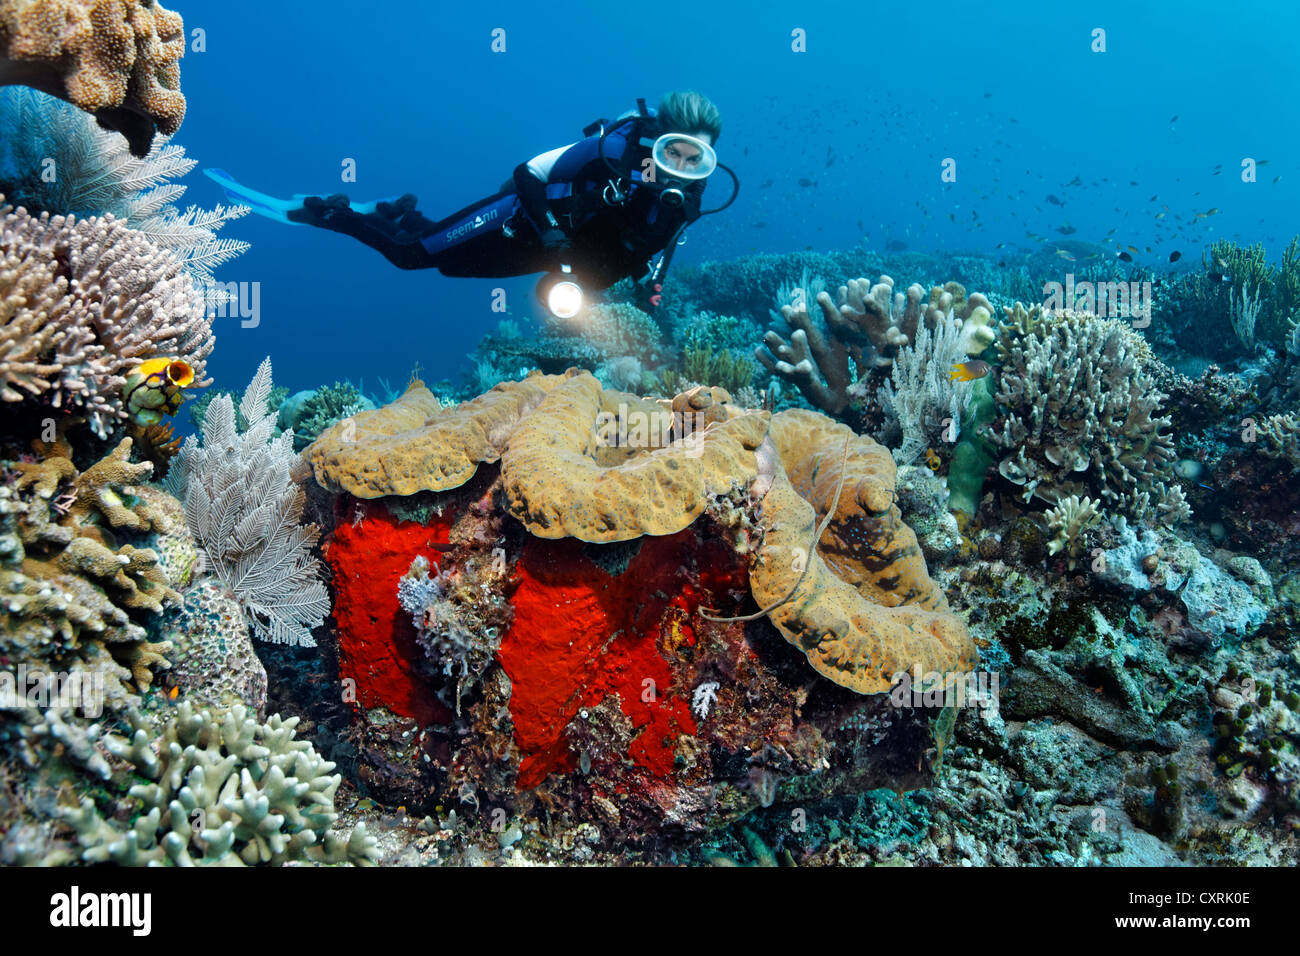 female diver looking at a giant clam tridacna gigas on